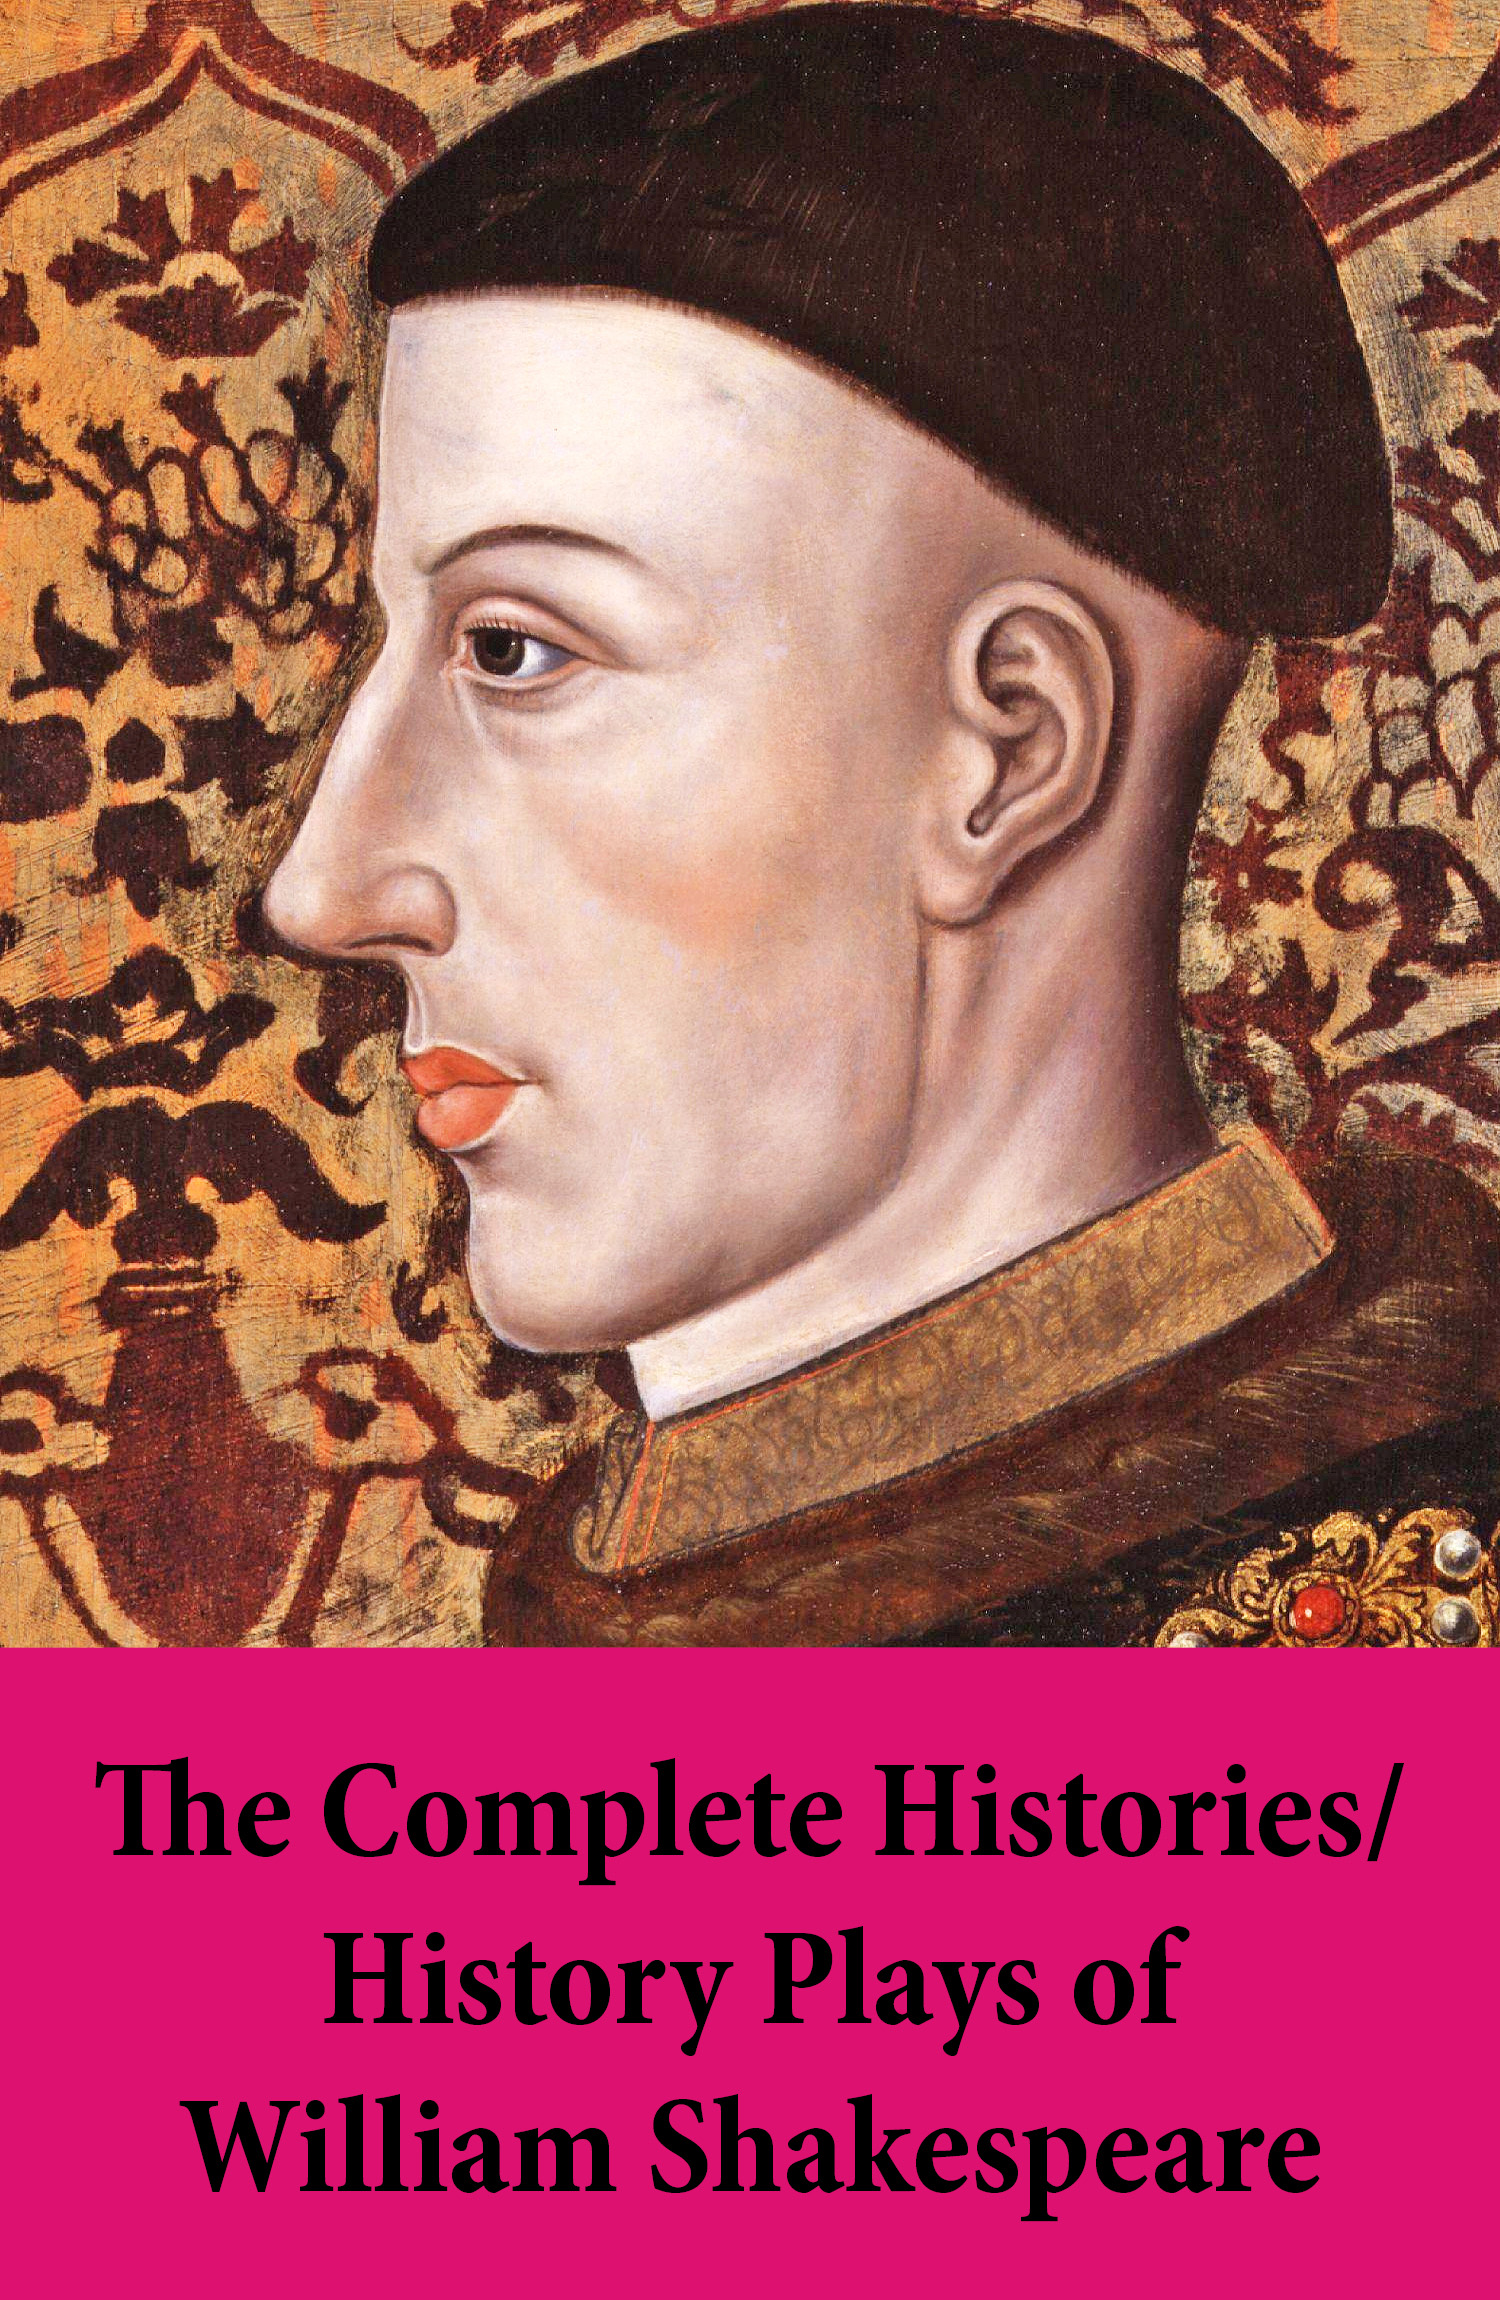 The Complete Histories / History Plays of William Shakespeare